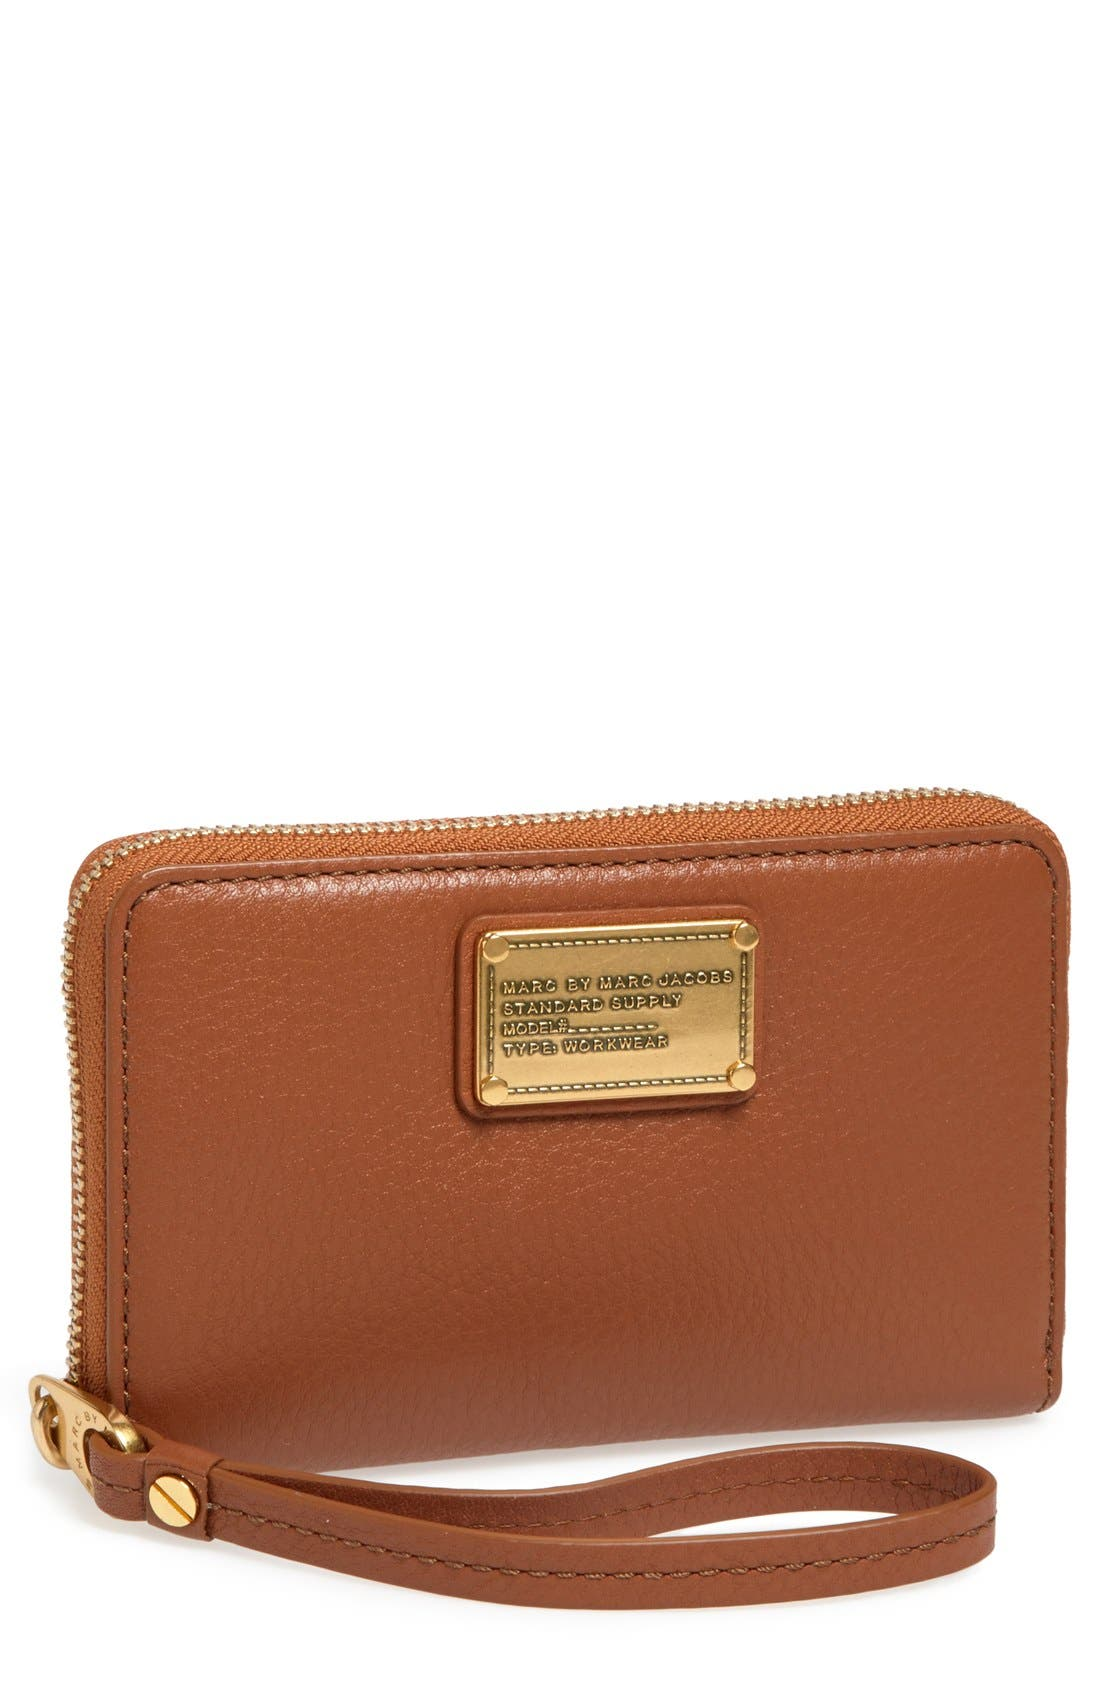 Main Image - MARC BY MARC JACOBS 'Classic Q Mildred' Wristlet Wallet